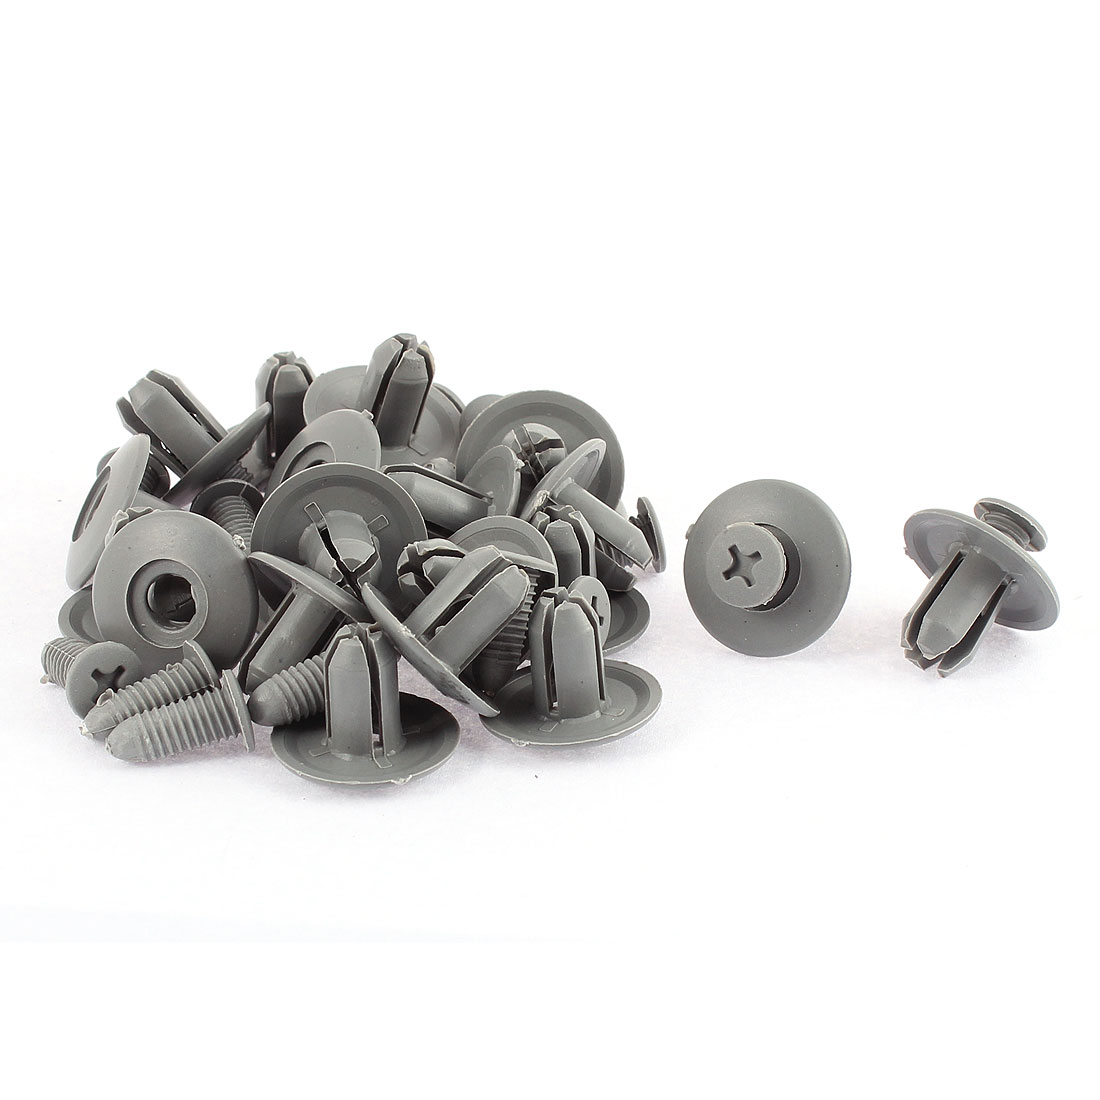 20 Pcs Gray Plastic Screw Rivet Lining Trim Panel Retainer Fastener Clips